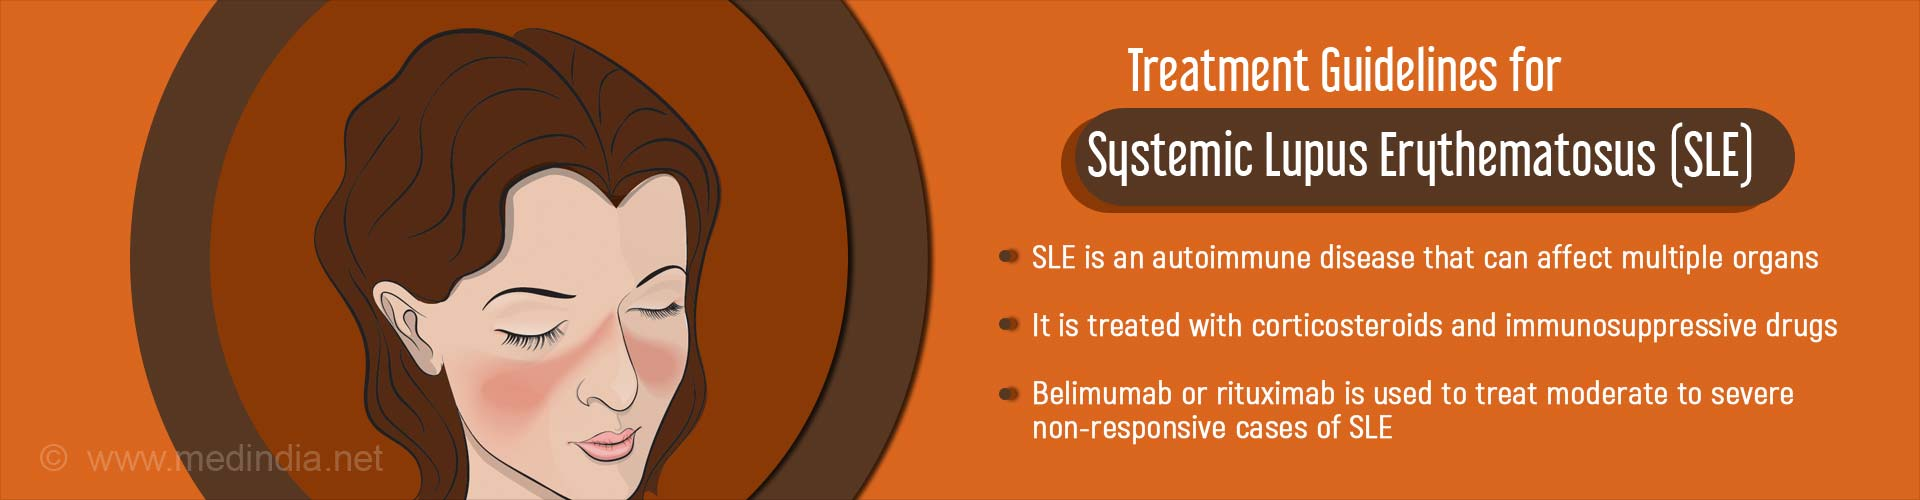 Treatment guidelines for systemic lupus erythematosus (SLE)